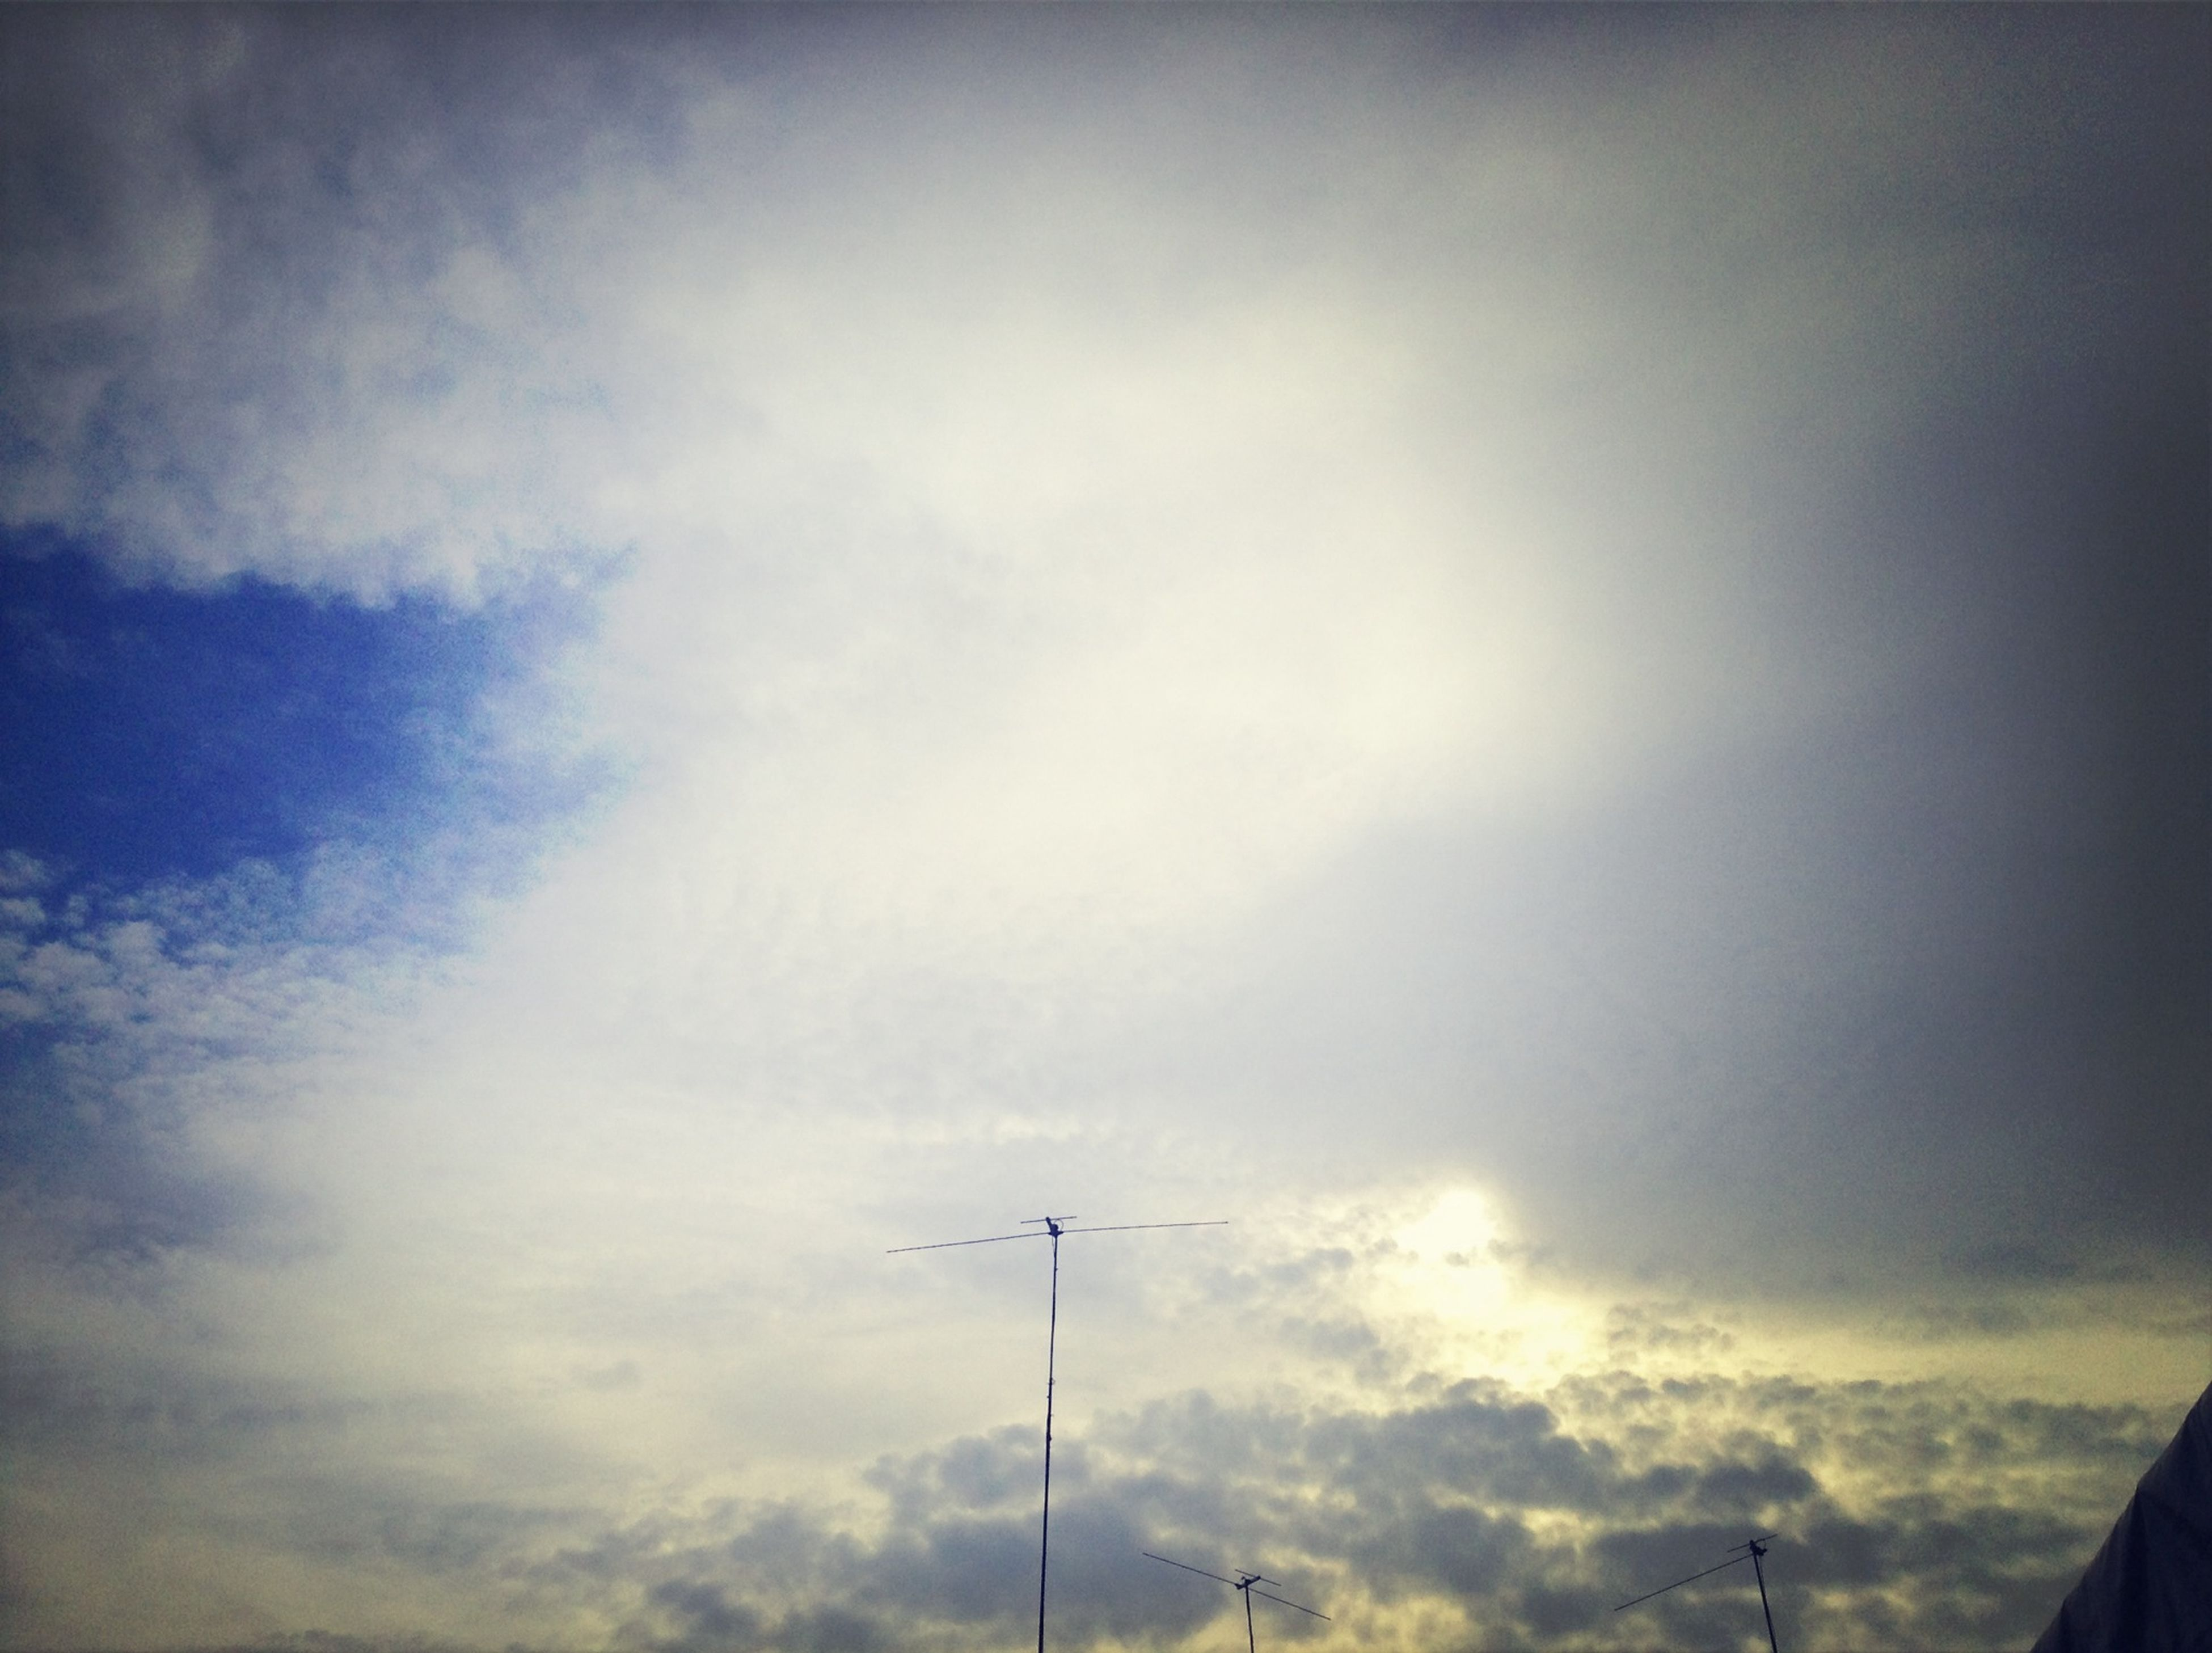 low angle view, sky, cloud - sky, cloudy, silhouette, cloud, street light, outdoors, nature, high section, day, no people, tranquility, beauty in nature, overcast, scenics, lighting equipment, built structure, airplane, dusk